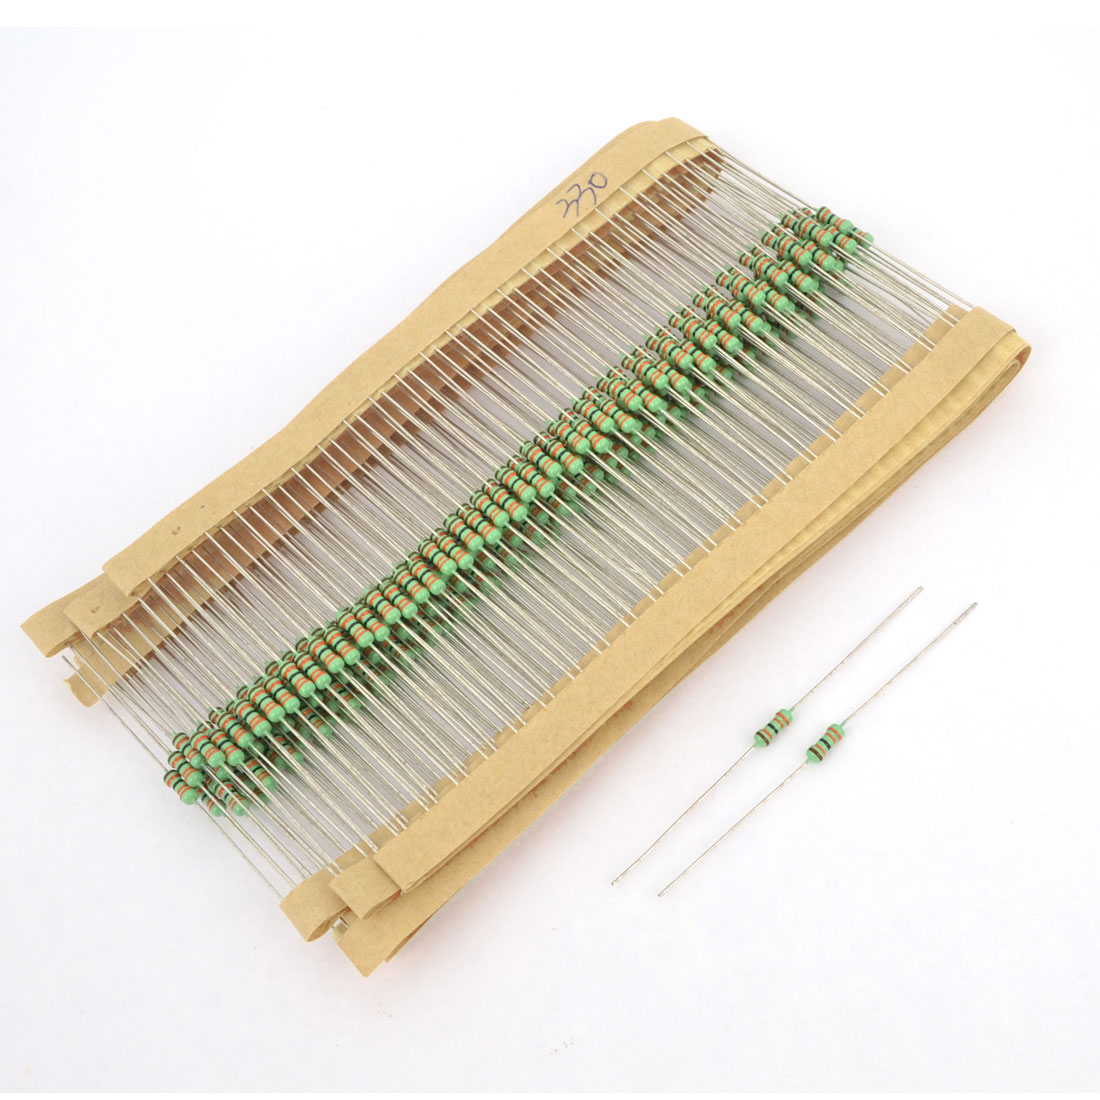 300pcs Axial Lead Through Hole 1/4W 1% 330K Ohm Metal Film Resistor